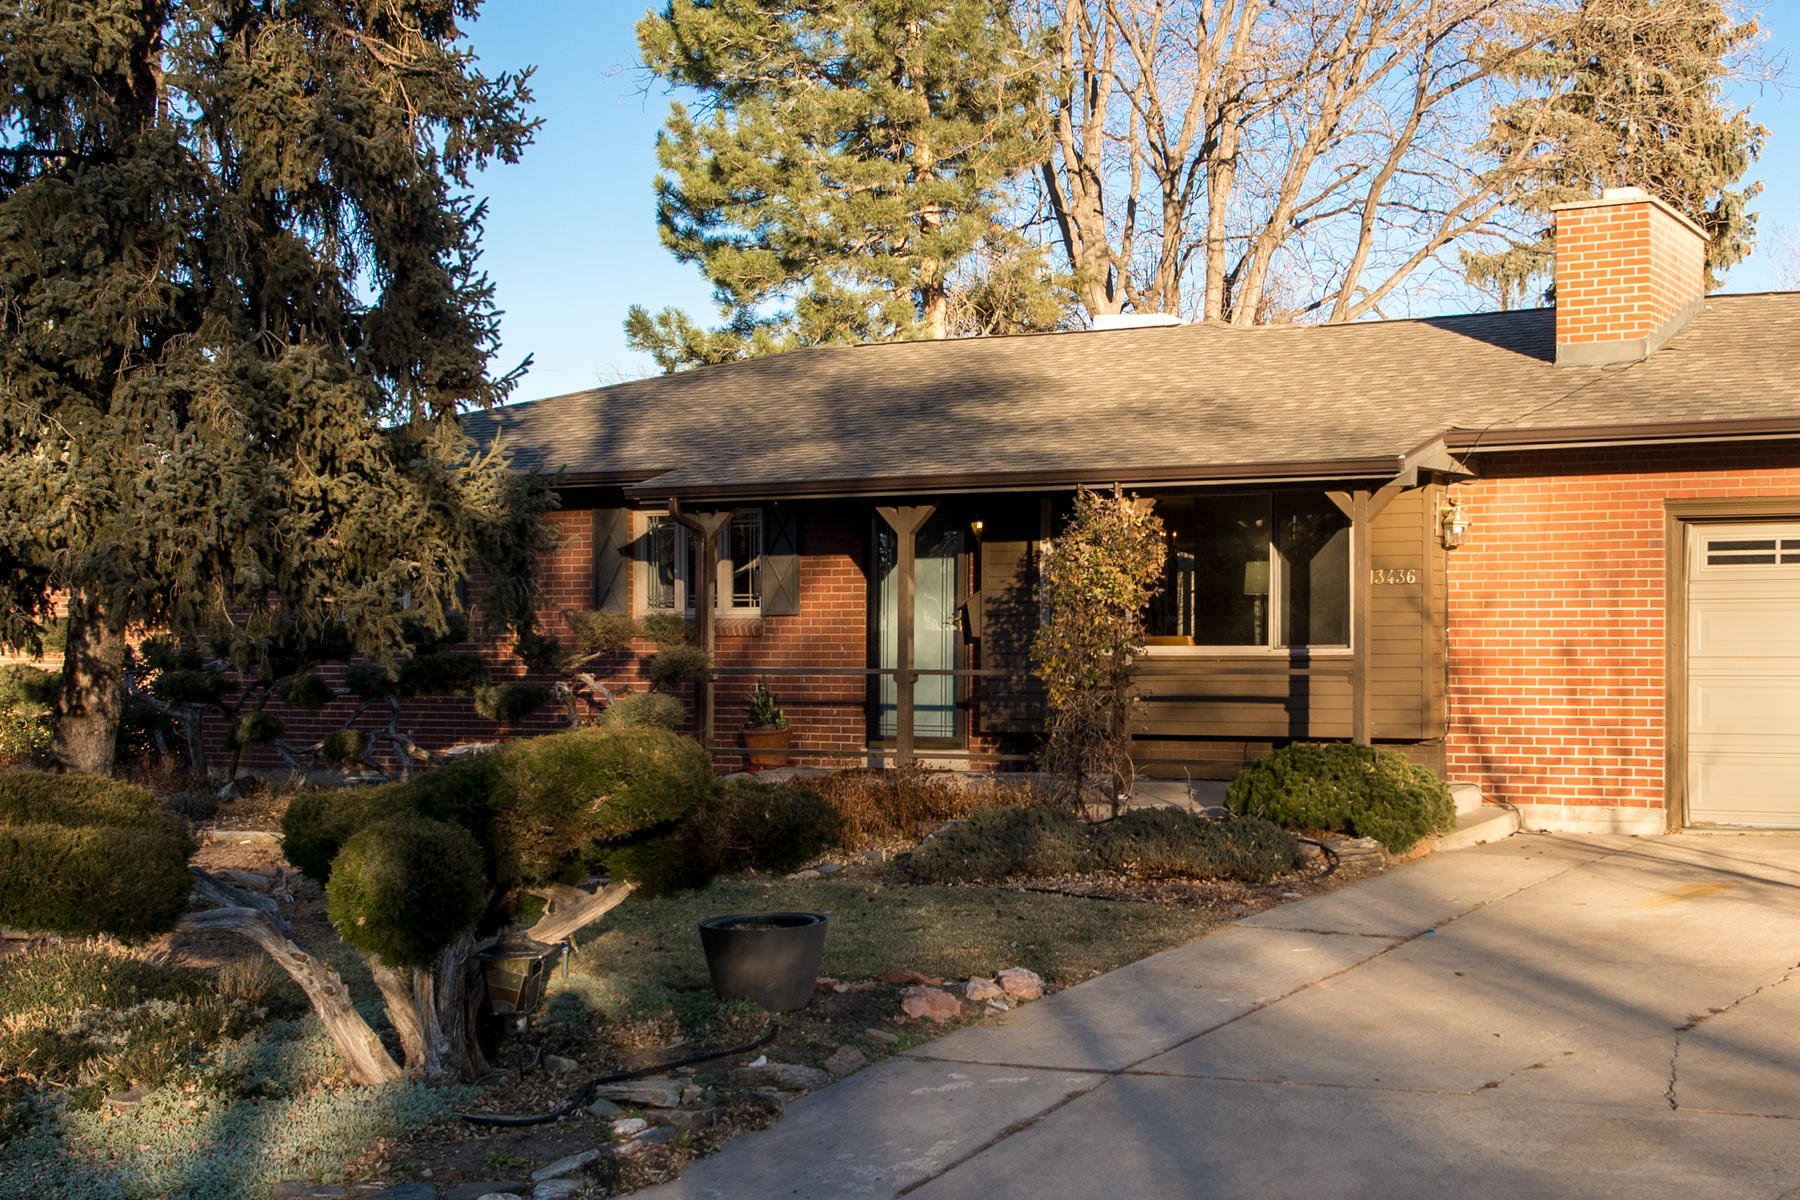 Single Family Home for Active at This classic brick ranch in Applewood, Golden is a must see! 13436 W 22nd Place Golden, Colorado 80401 United States